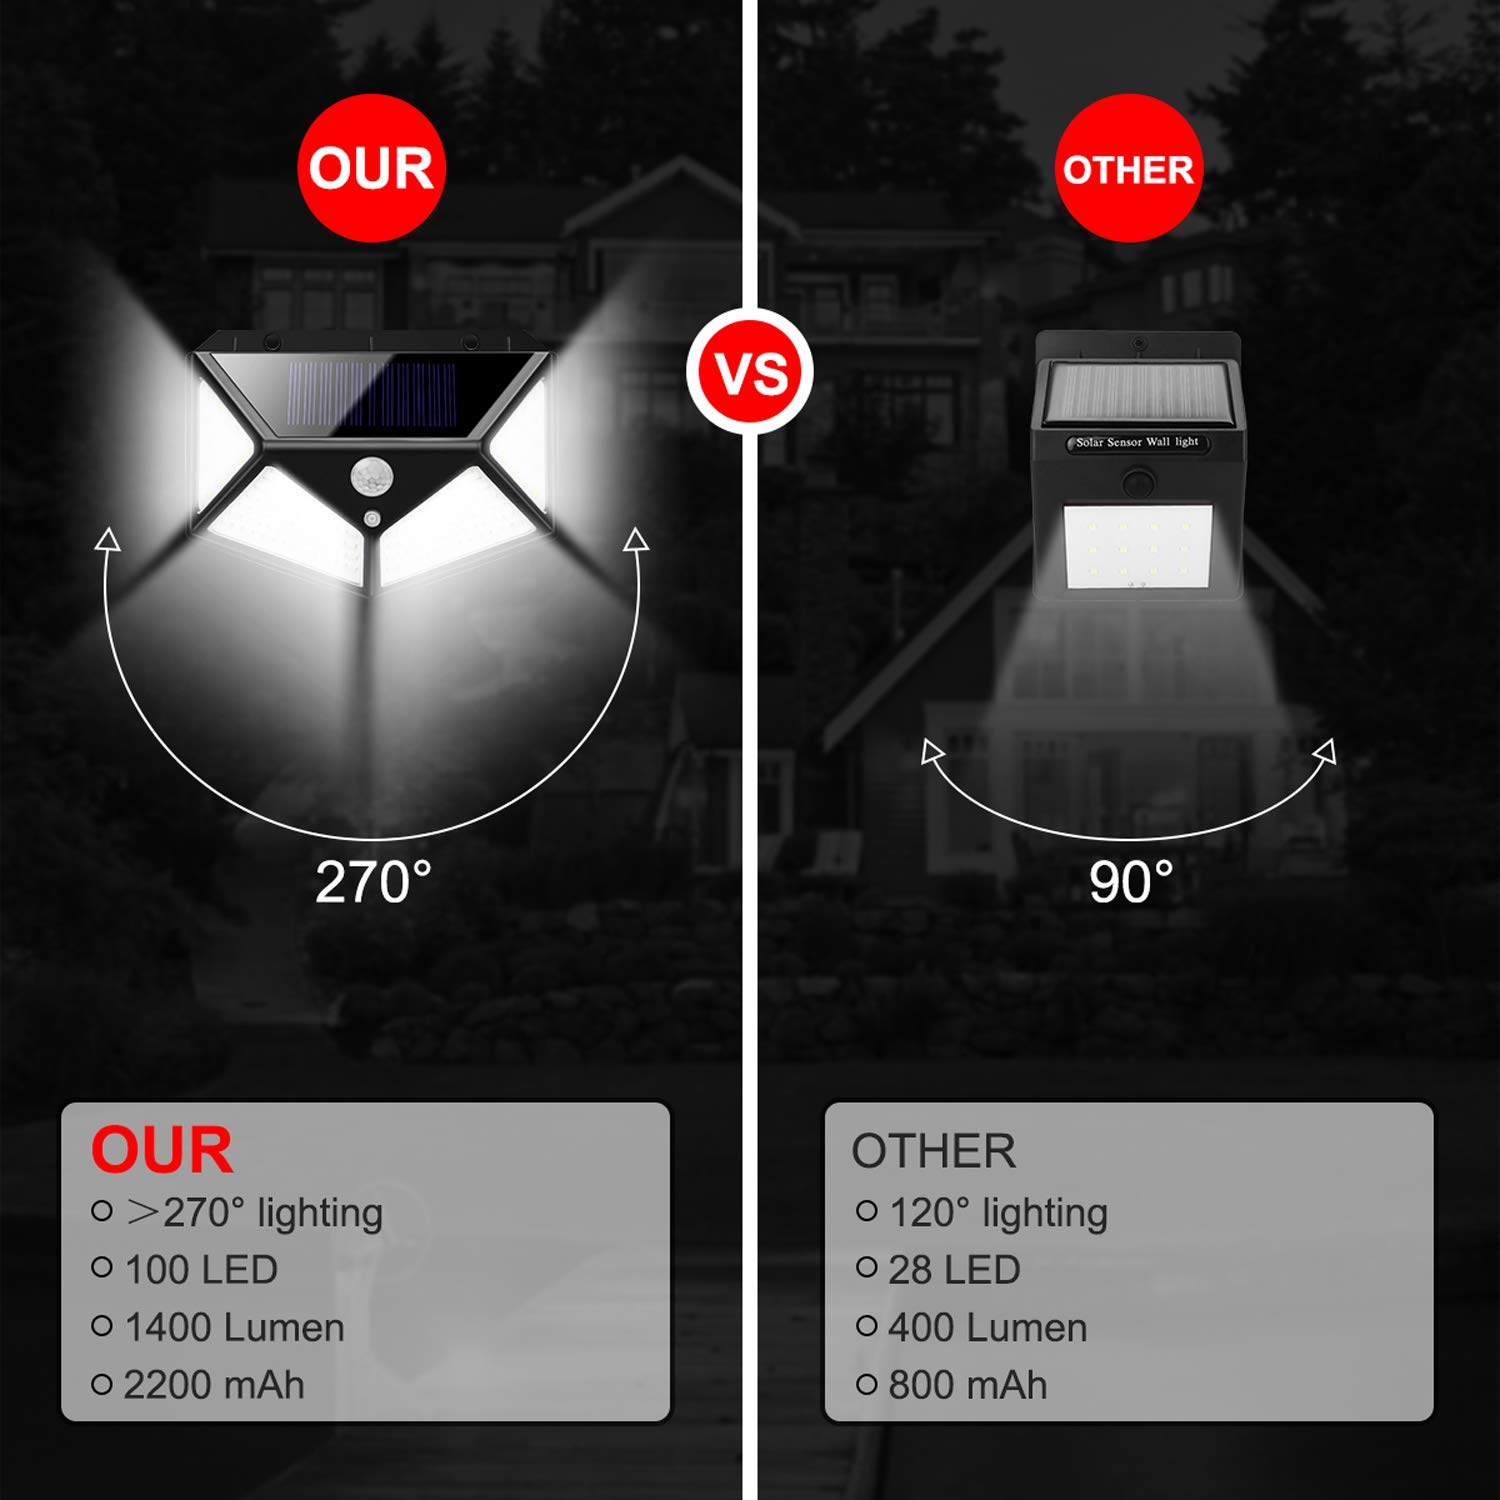 Led Solar Lights Outdoor – Solar Motion Sensor Light Outdoor – Led Flood Light – Wireless Waterproof Security with 270 Wide Angle Solar Lights – 2 Pack